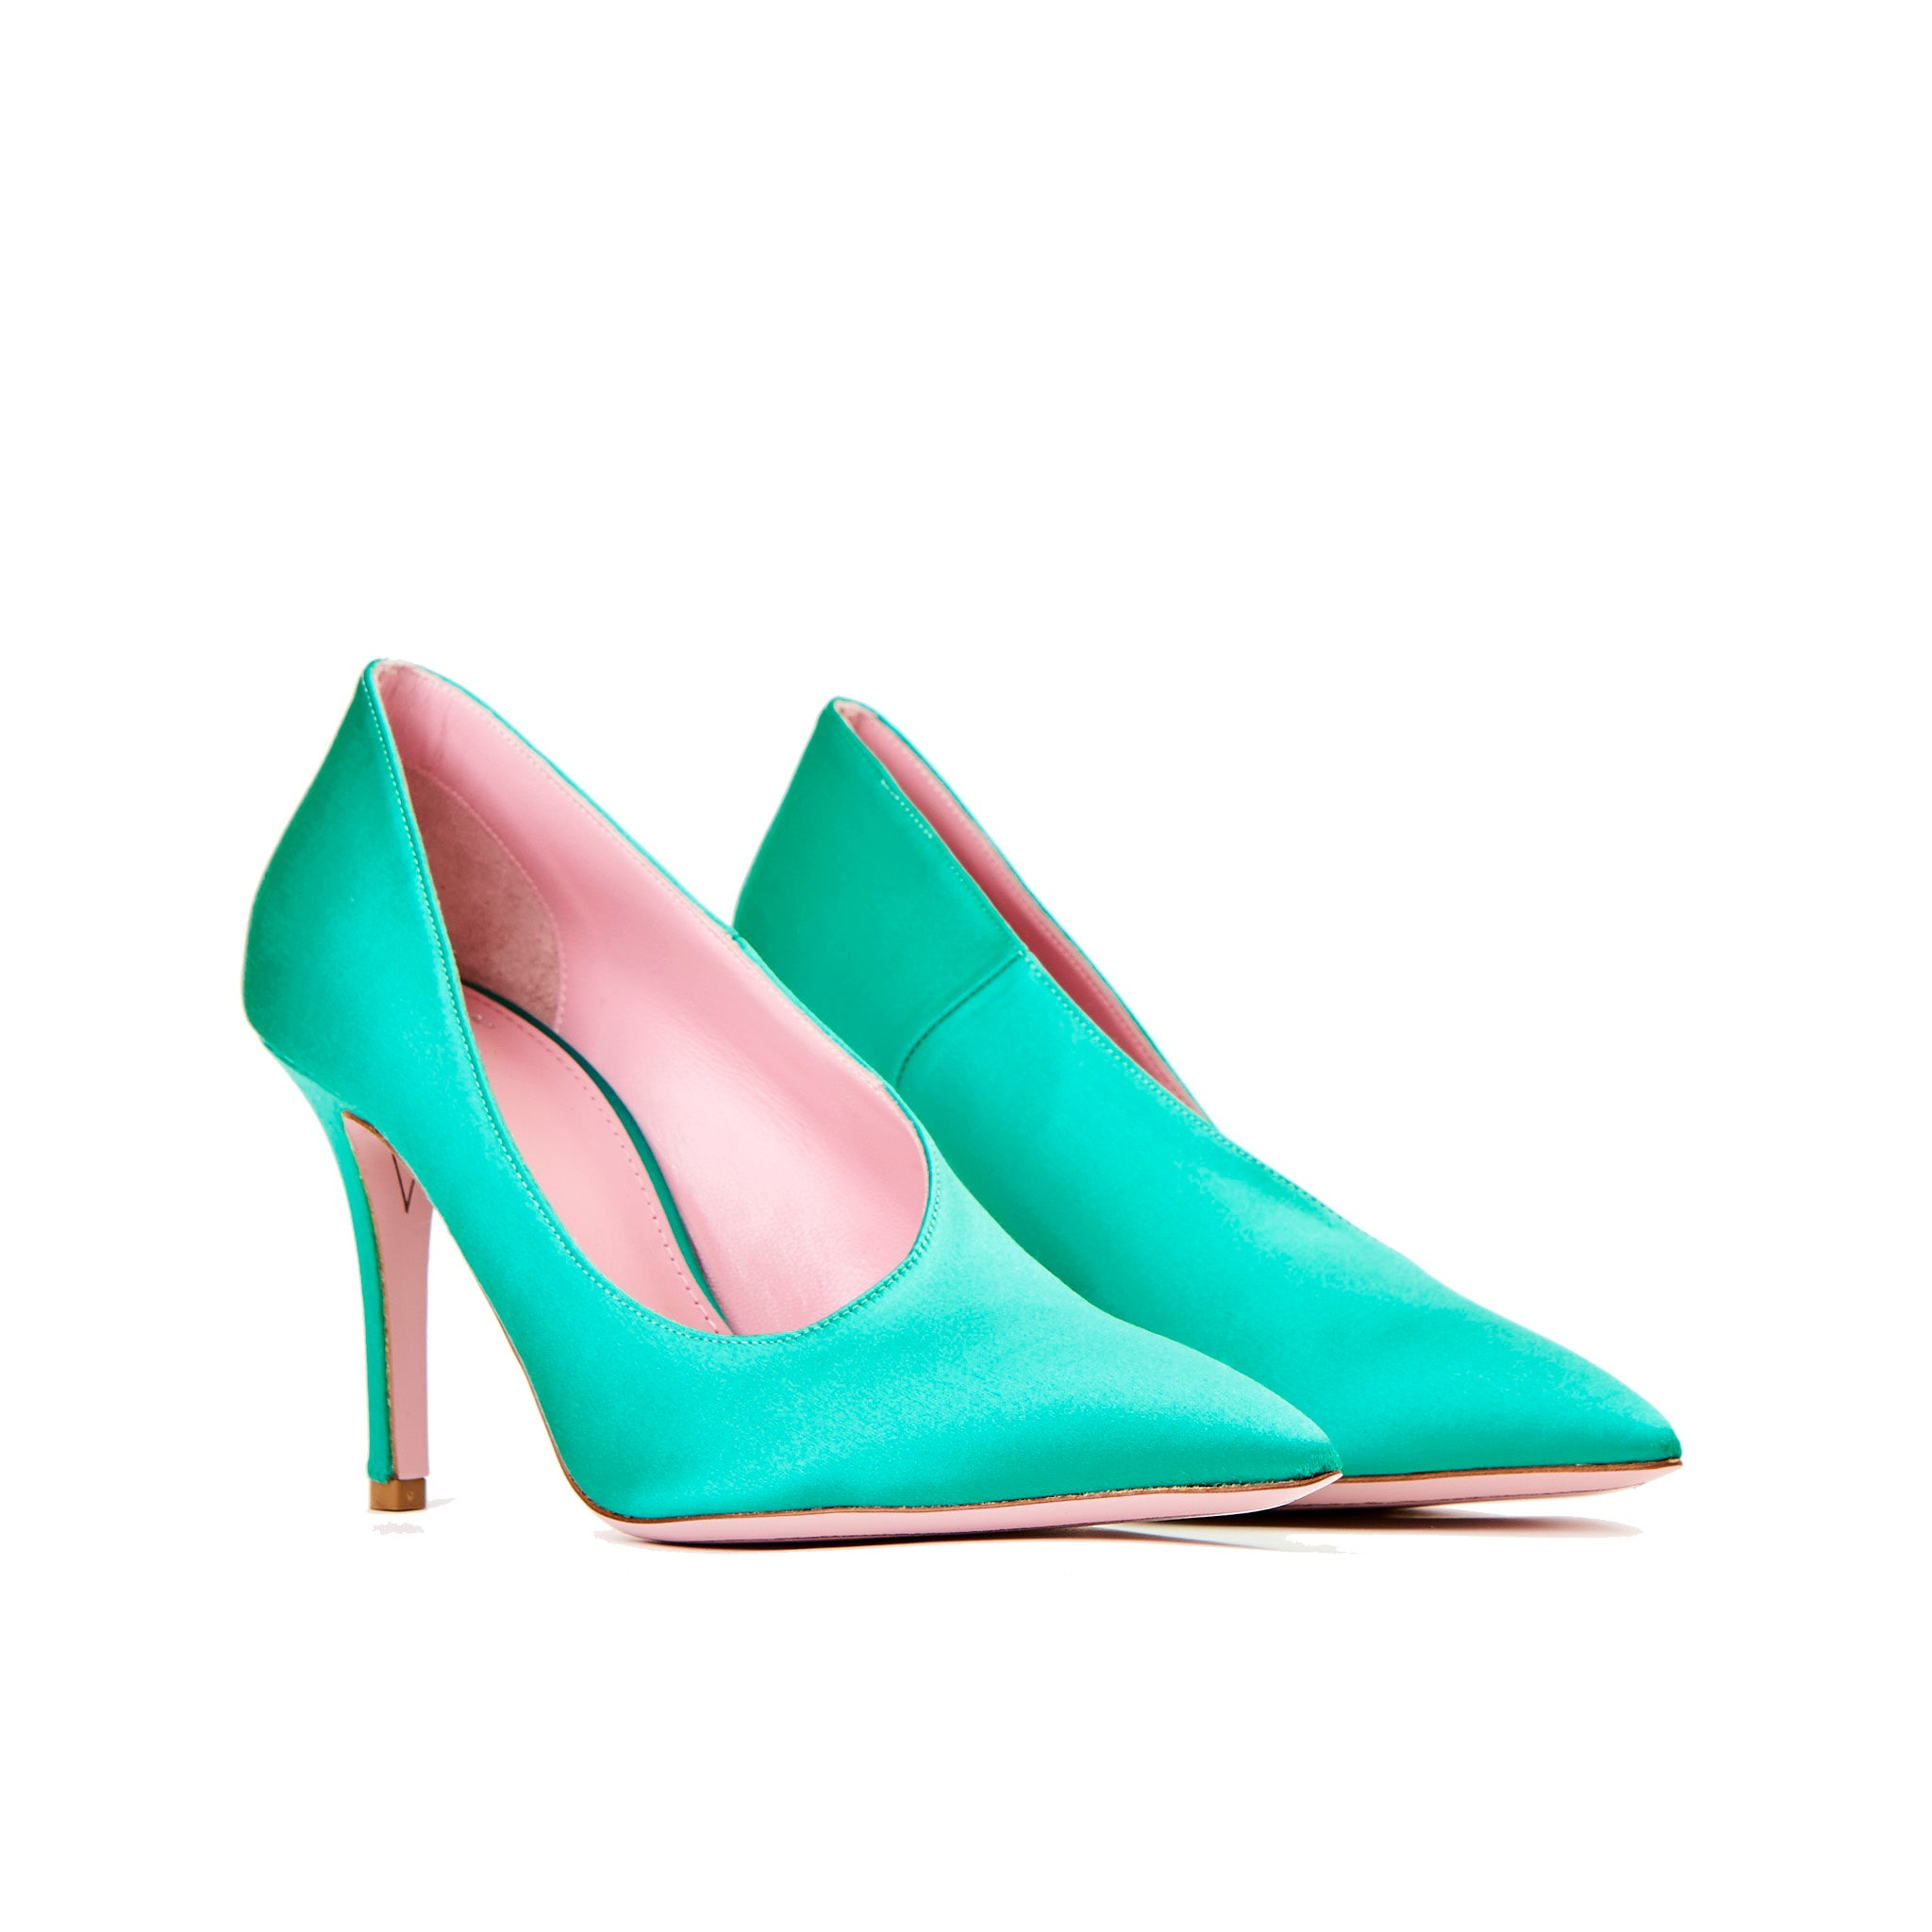 Phare seta asymmetrical pump in verde silk satin 3/4 view